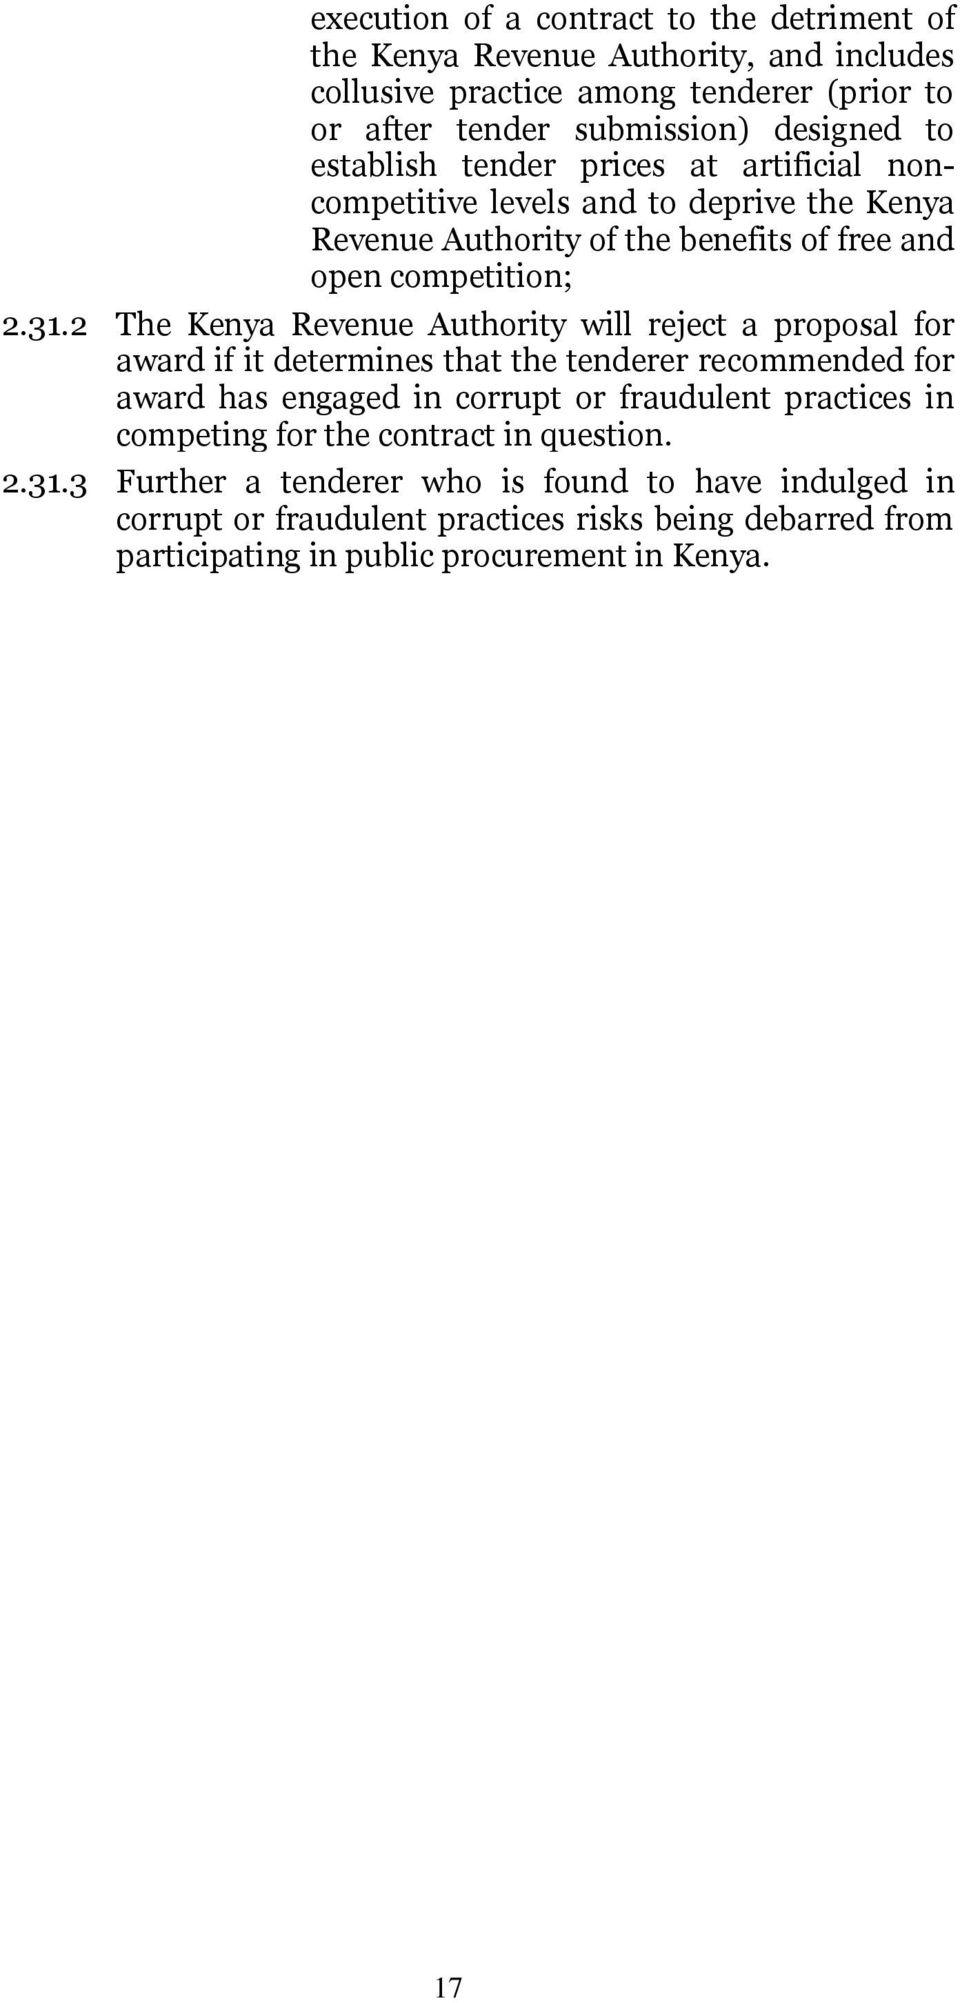 2 The Kenya Revenue Authority will reject a proposal for award if it determines that the tenderer recommended for award has engaged in corrupt or fraudulent practices in